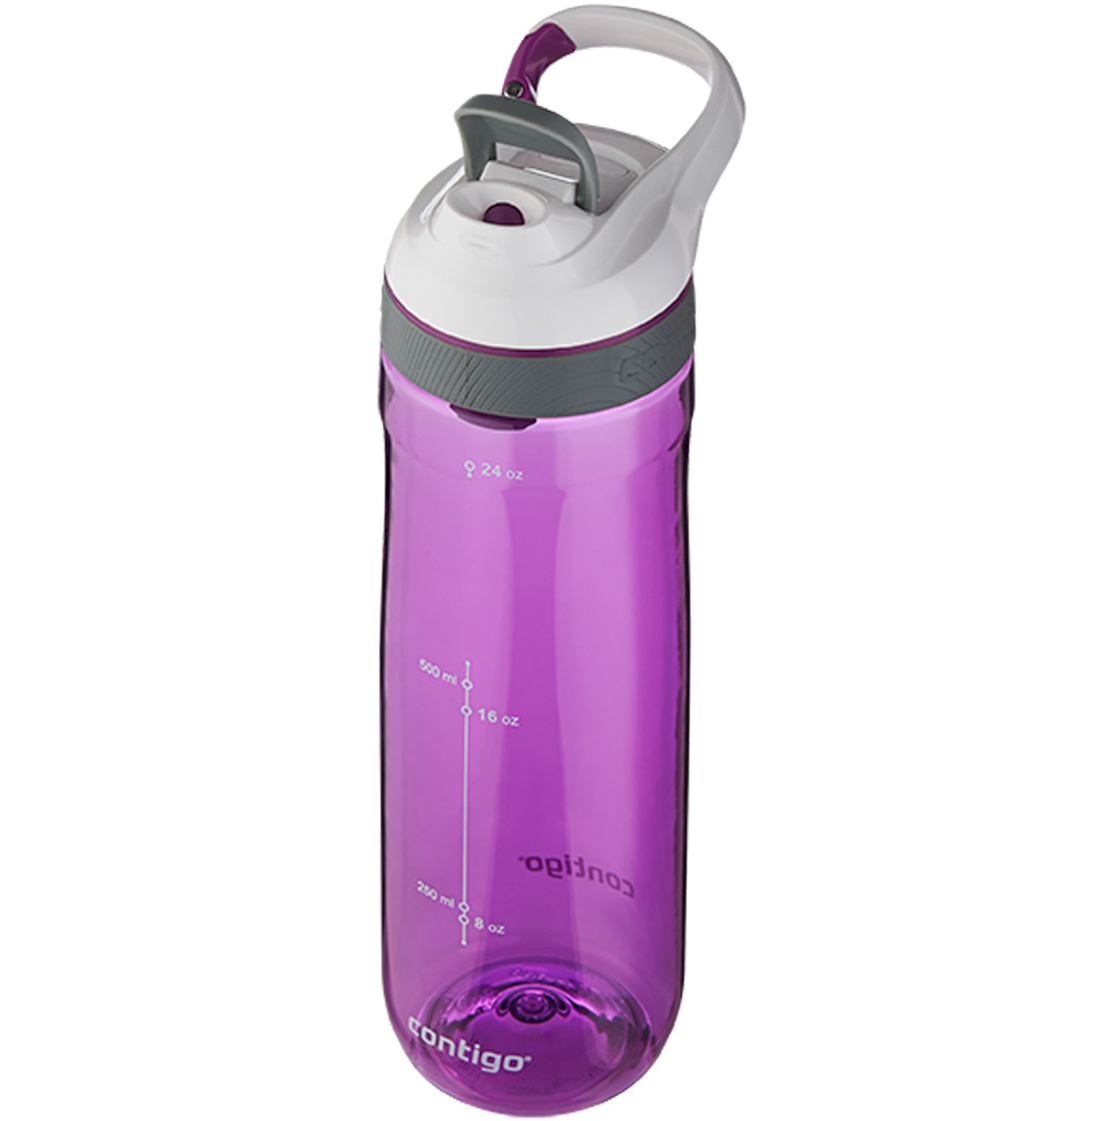 Contigo-24-oz-Cortland-Autoseal-Water-Bottle miniature 11